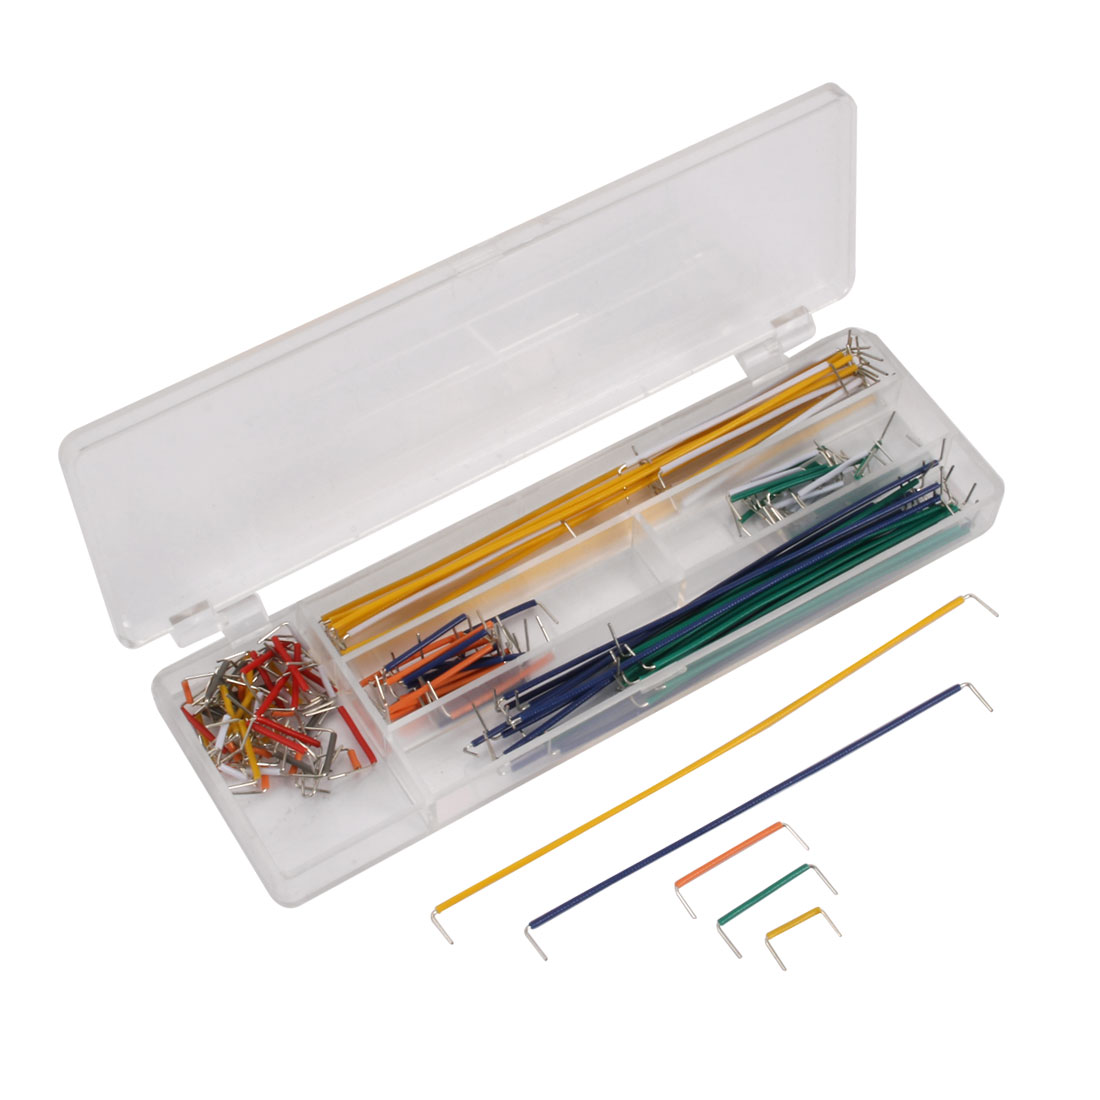 ZYJ-140 140 Pcs Solderless Breadboard Board Jumper Cable Wire Kit w Box